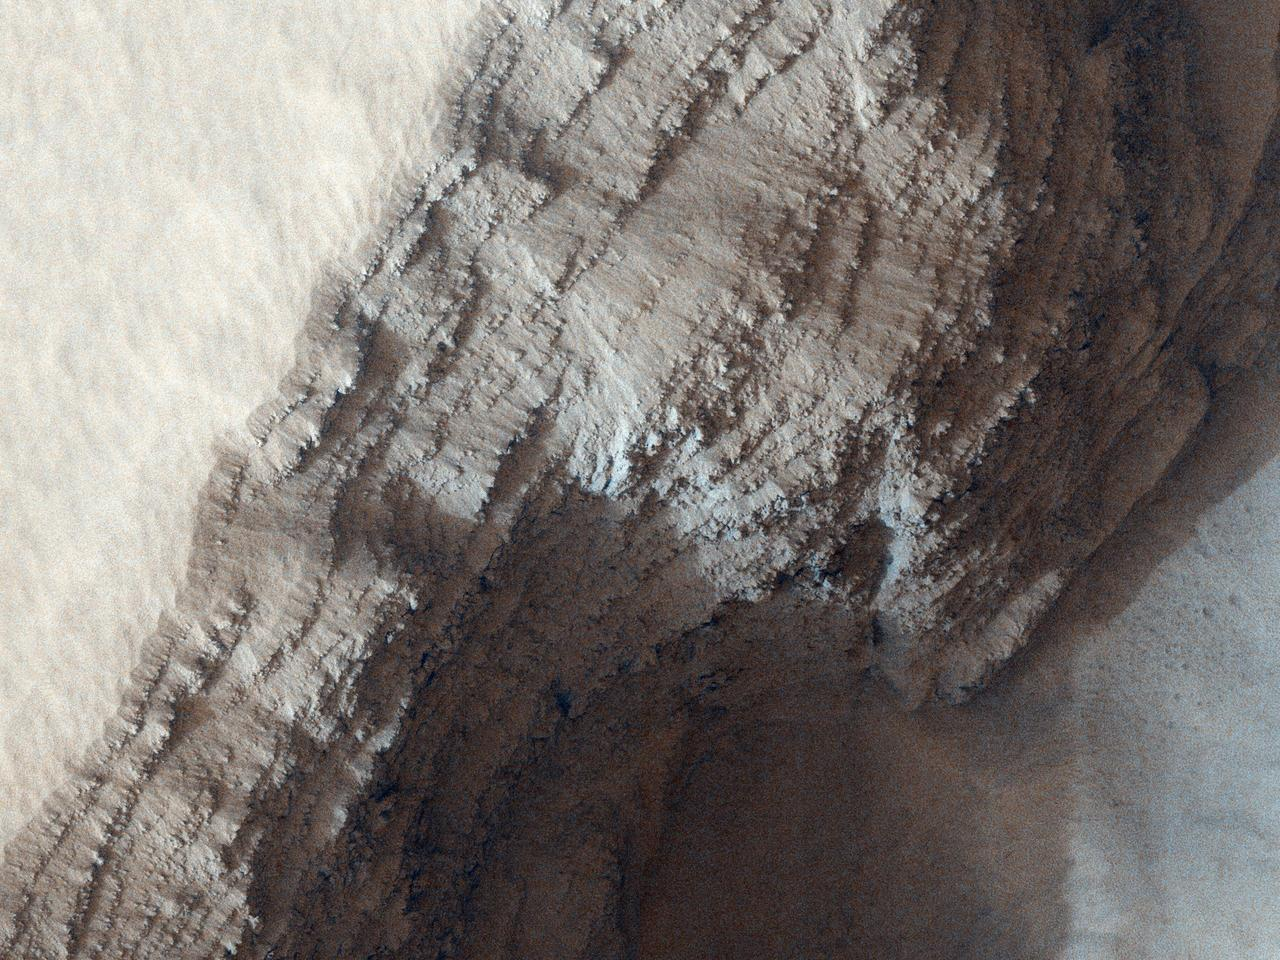 Layers in Arsia Mons Volcano